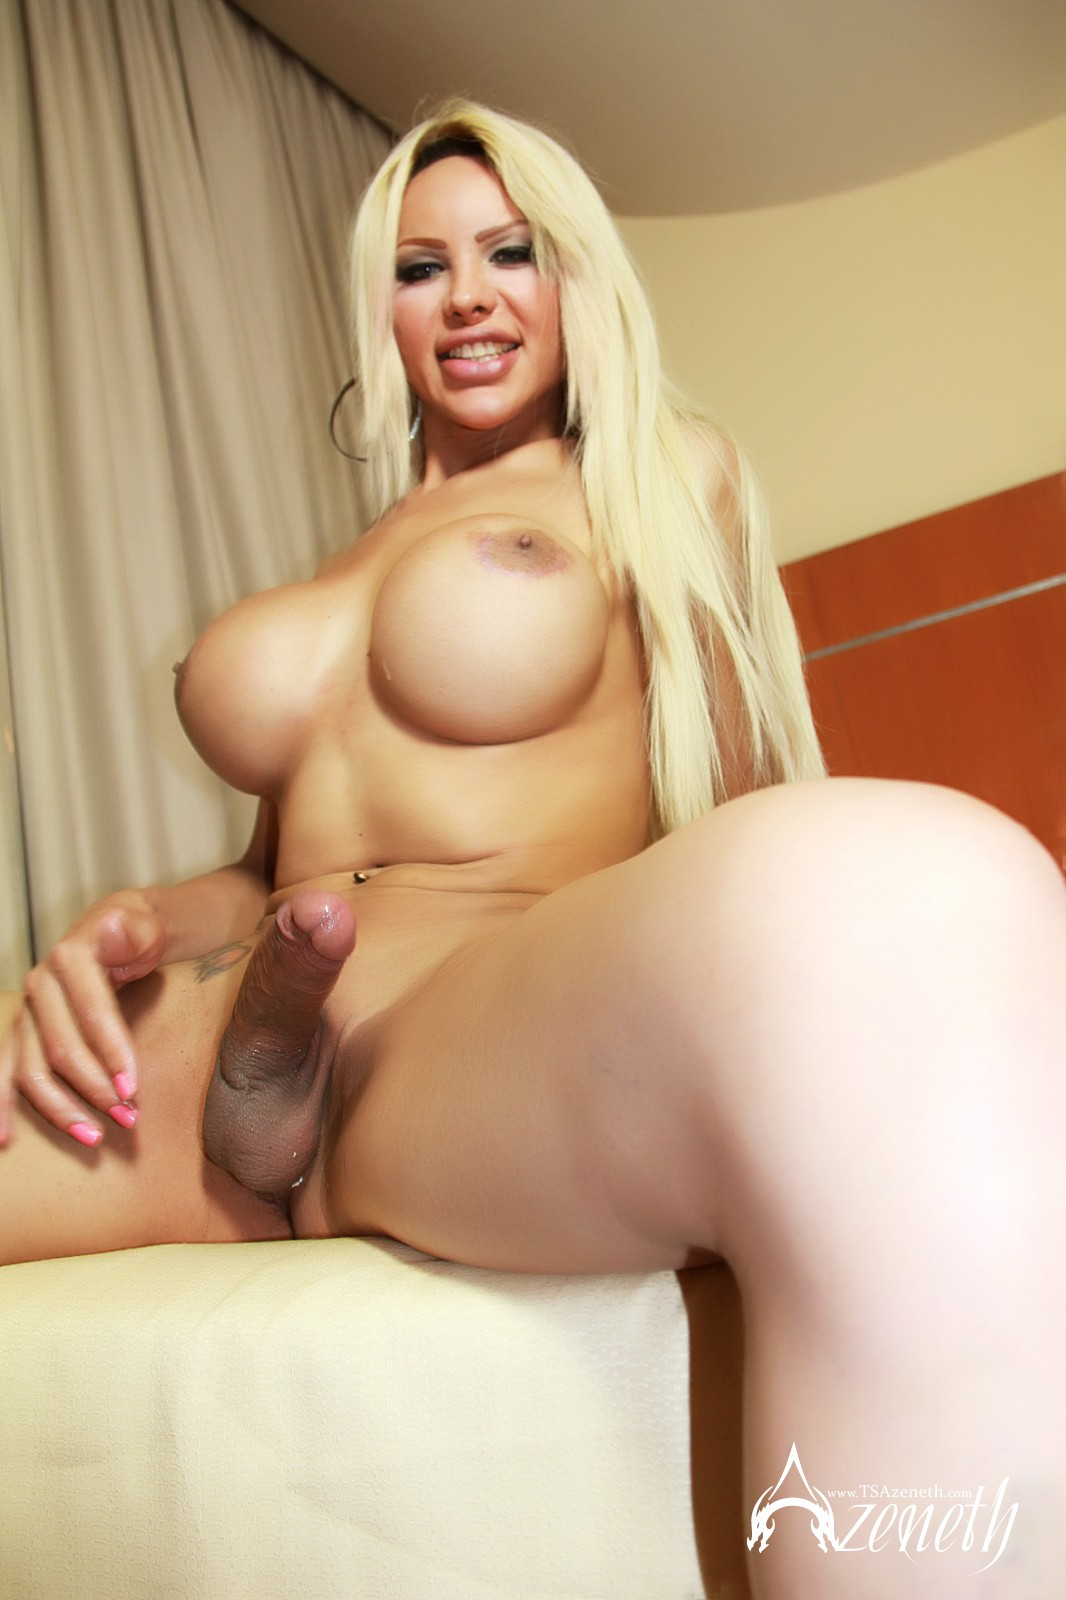 Shemale tranny movies and pic galleries